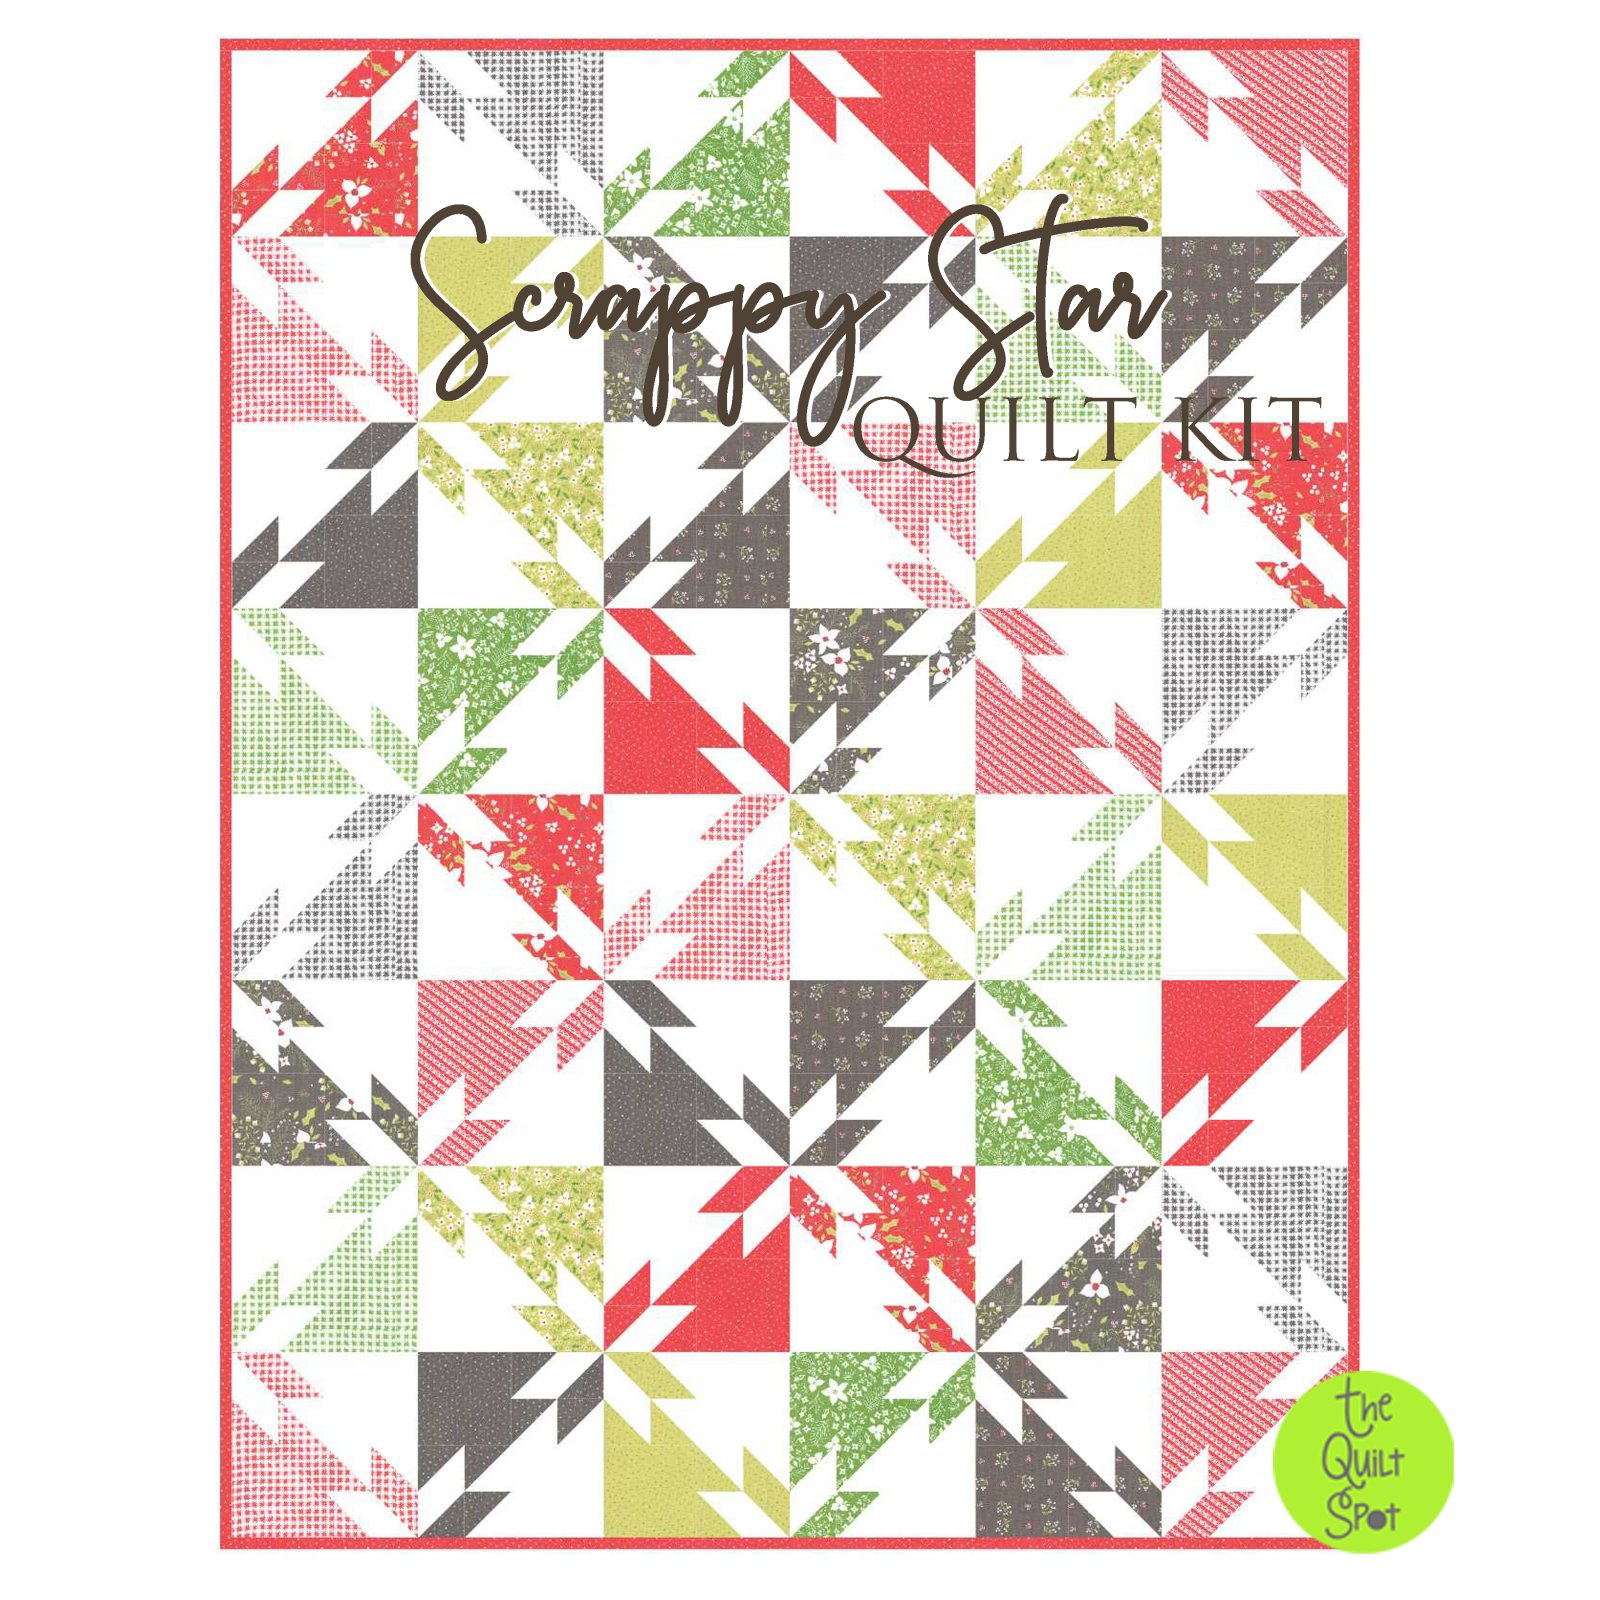 Scrappy Star Quilt Kit - Holliberry Edition